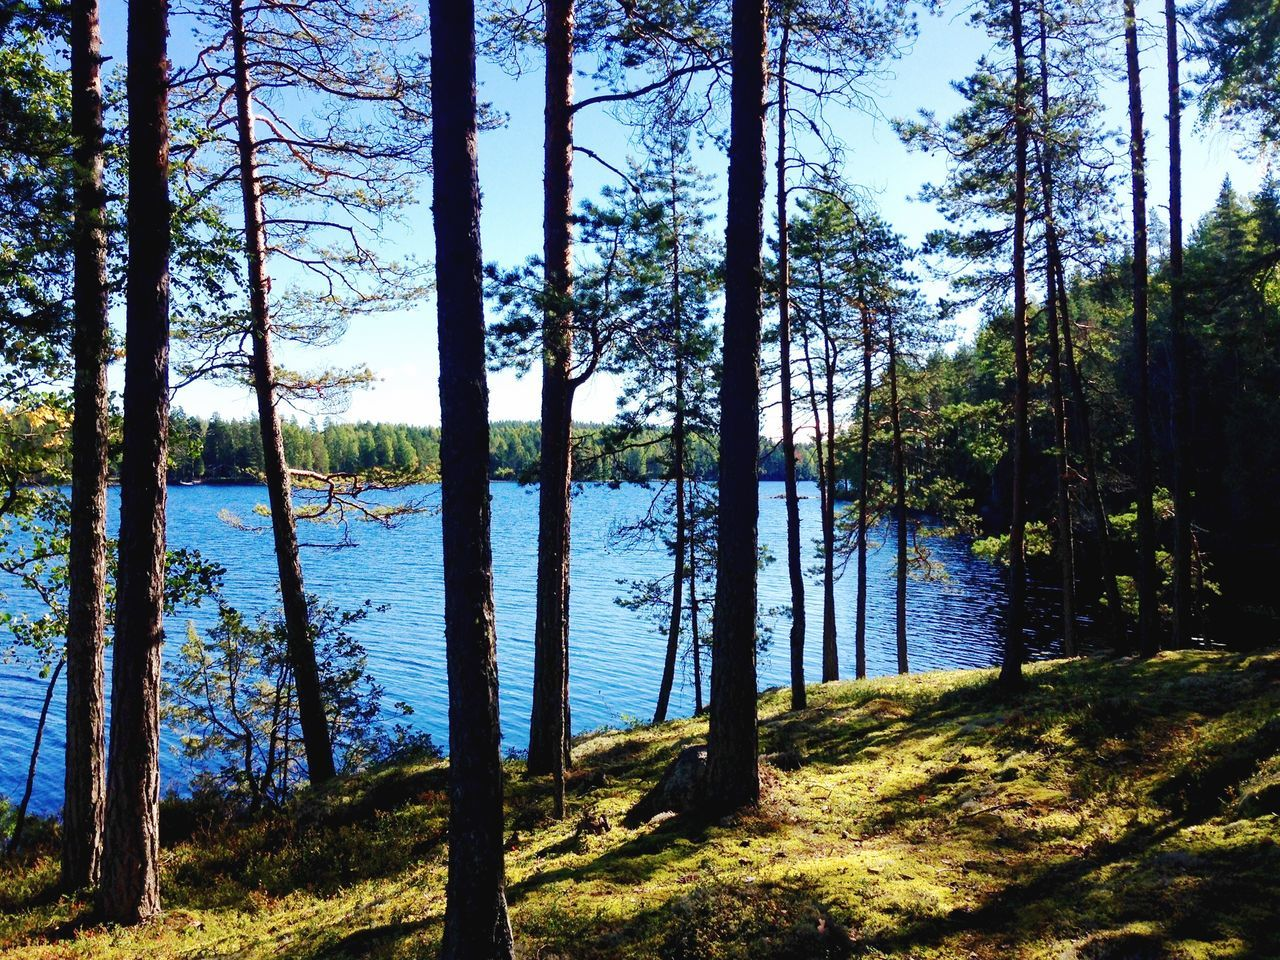 Wald + See. Nature Finland Tree Water Lake Landscape Forest Scenics Beauty In Nature No People Outdoors Day Tranquility Beautiful Detail Tree Sky Green Blue Light And Shadow Alone Alone Time Paradise Finland Summer Finlandia